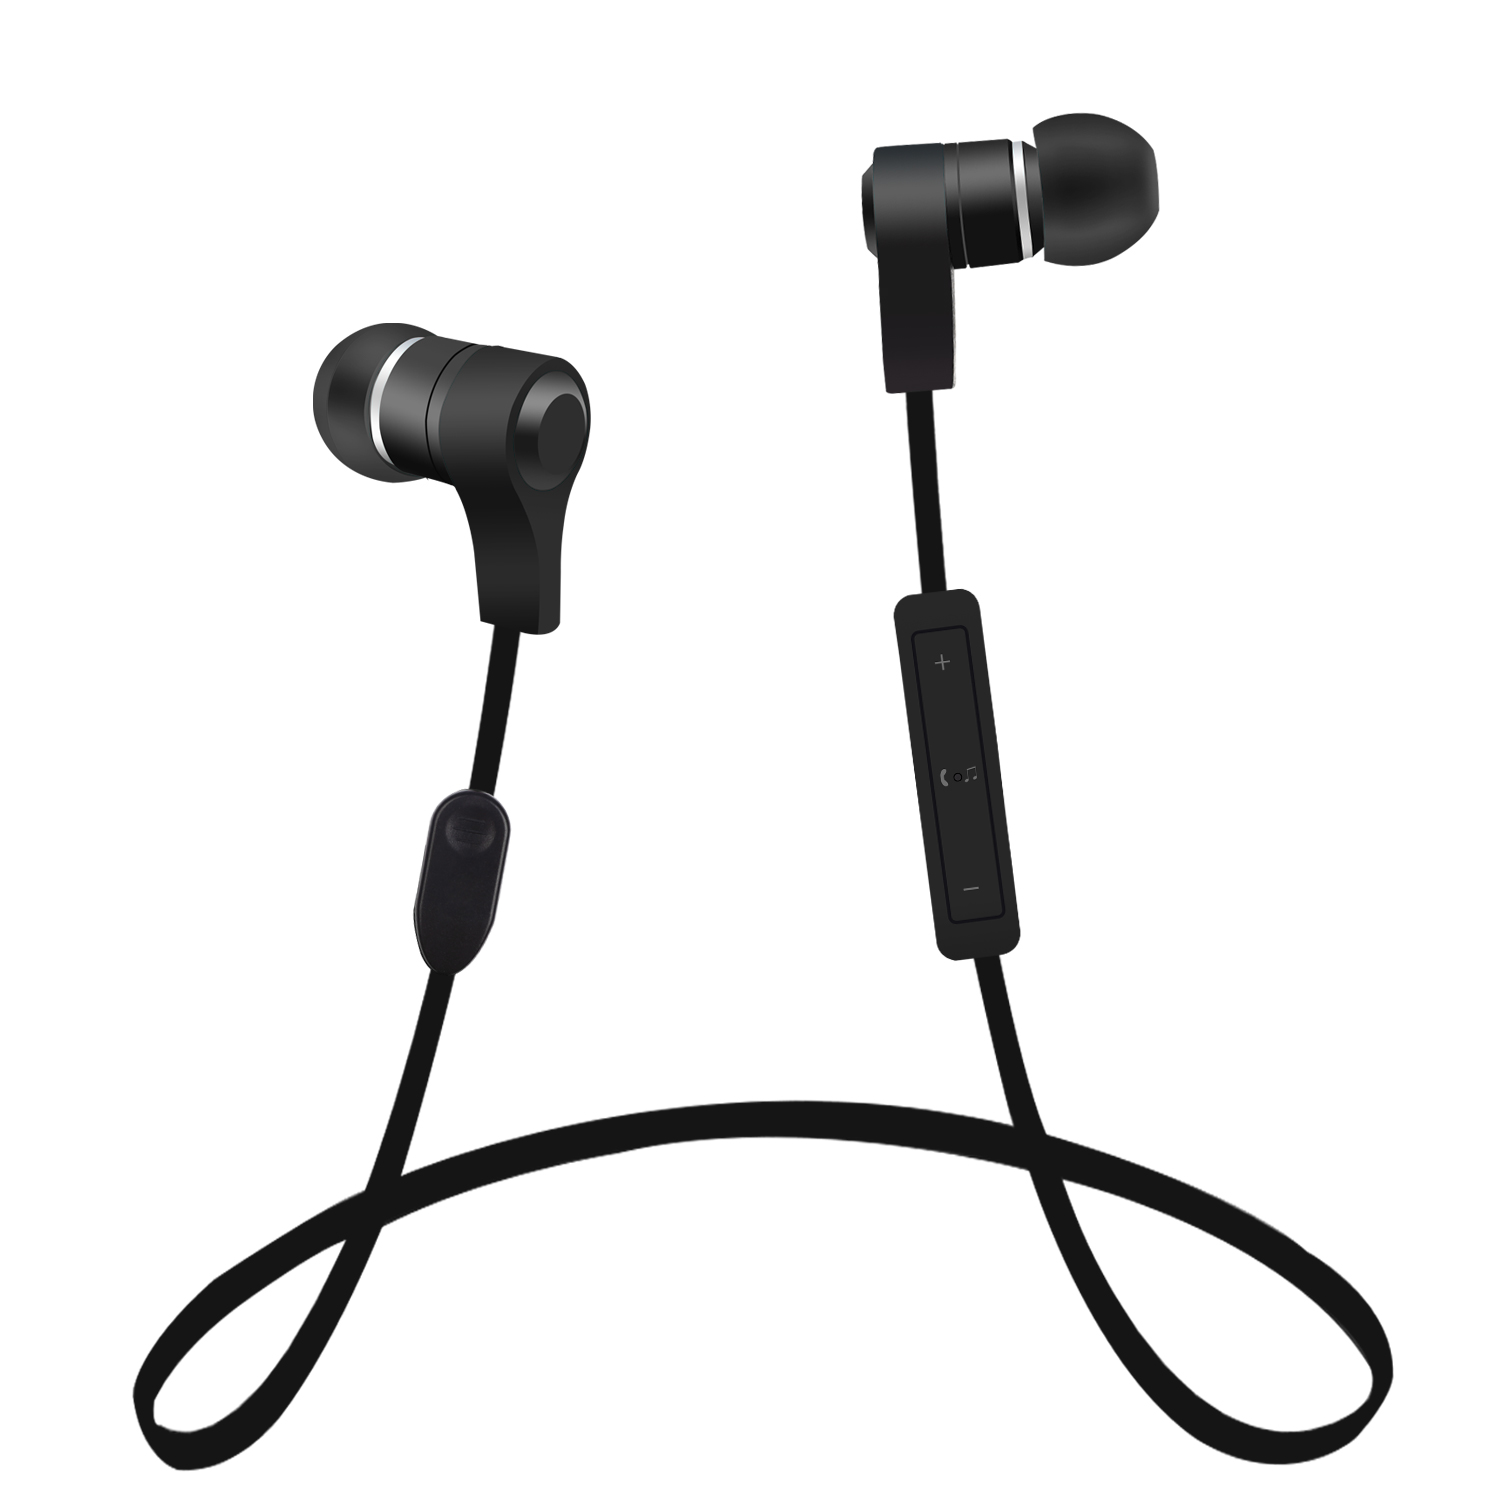 xiomi phone new fone de ouvido bluetooth earphone headphones pc gamer headset salar gami ...